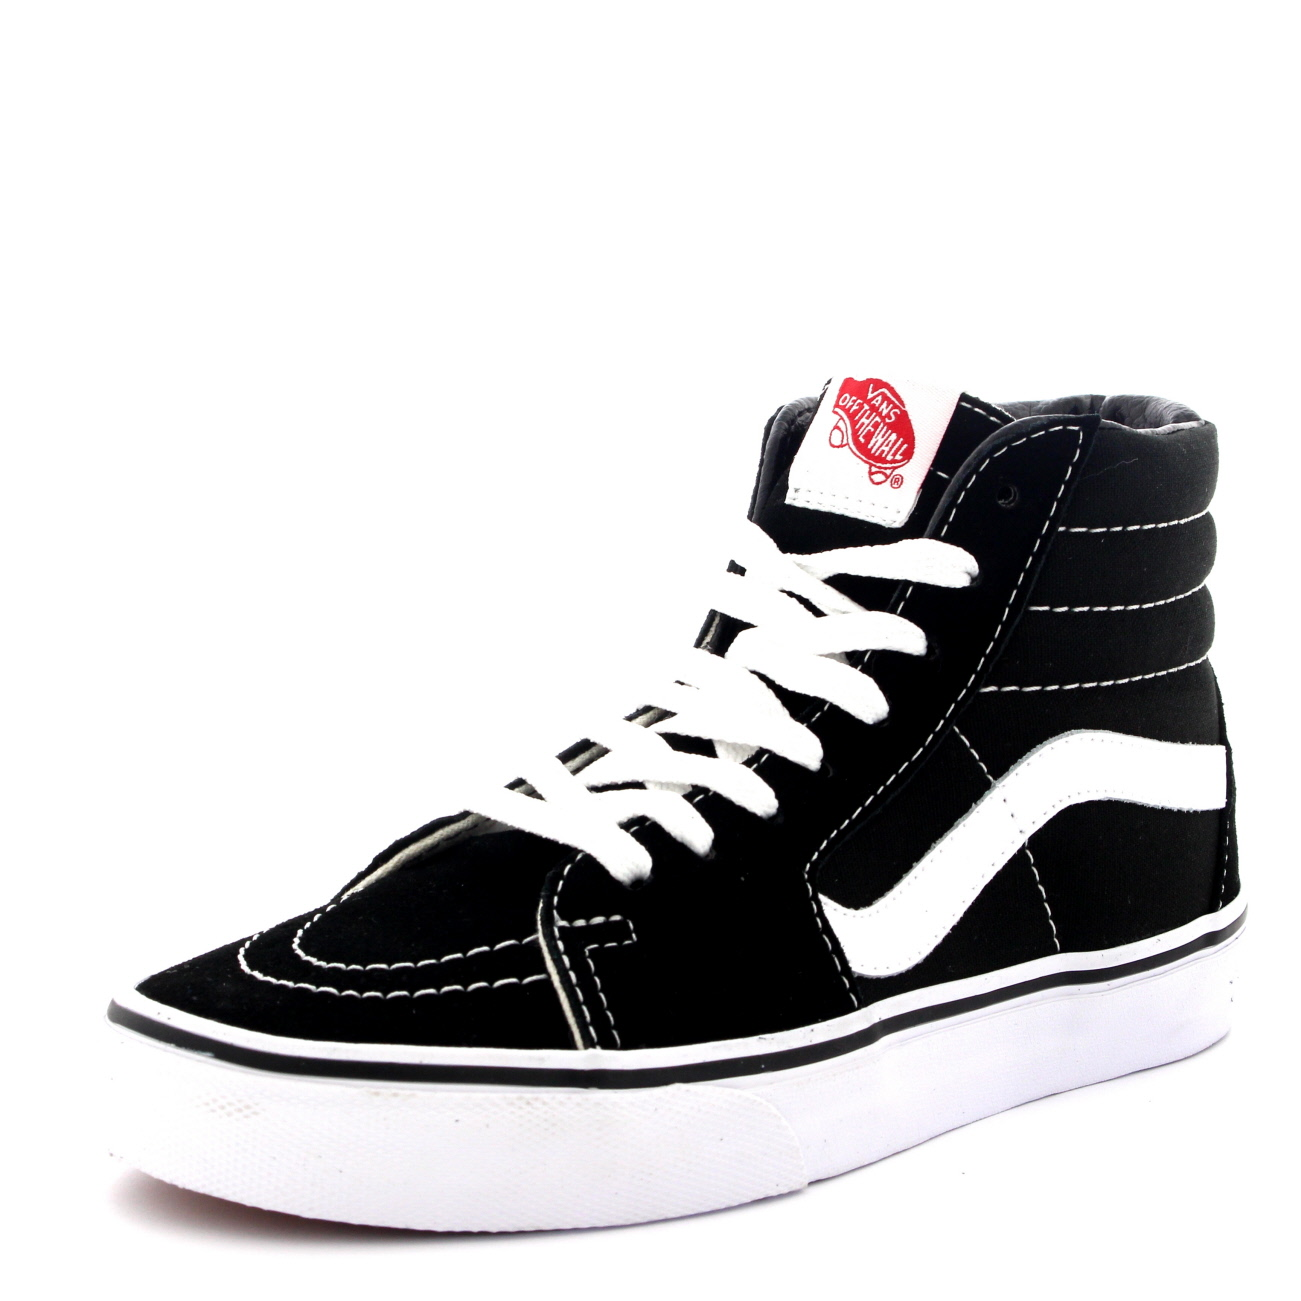 Unisex Adults Vans Sk8-Hi Lace Up High Top Canvas Skate ...